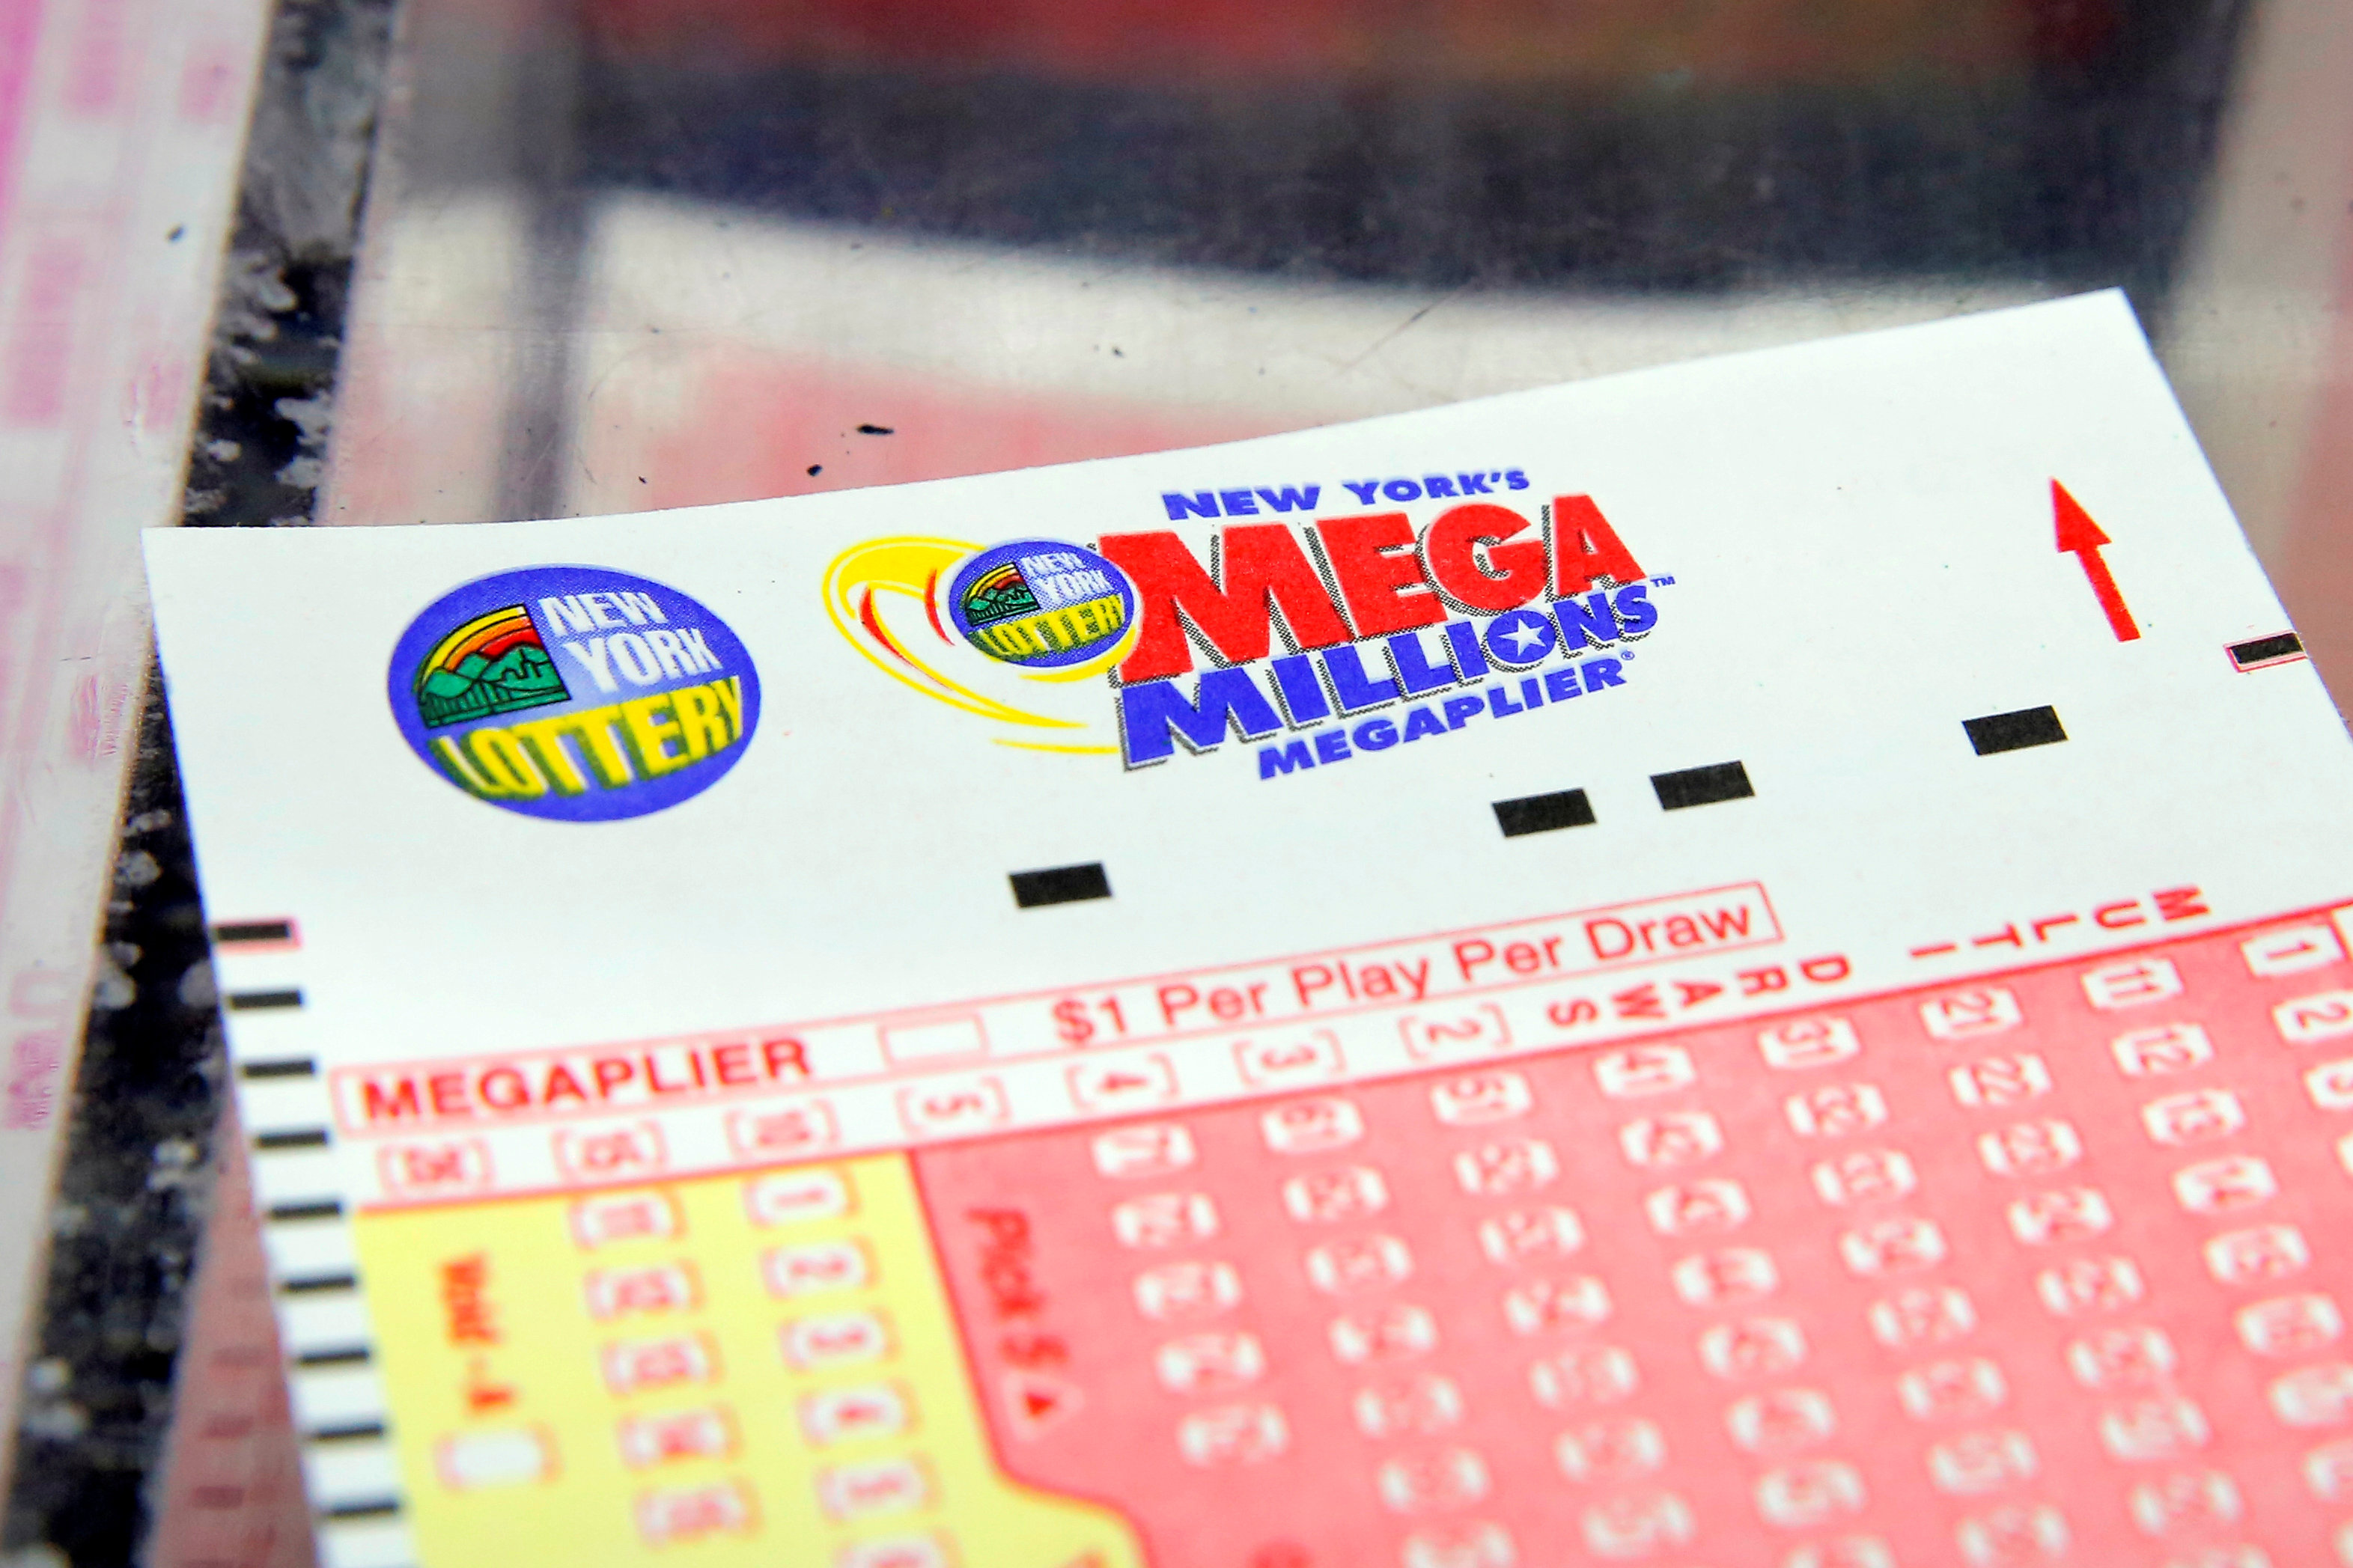 Mega Millions winning numbers announced for $548 million jackpot - CBS News